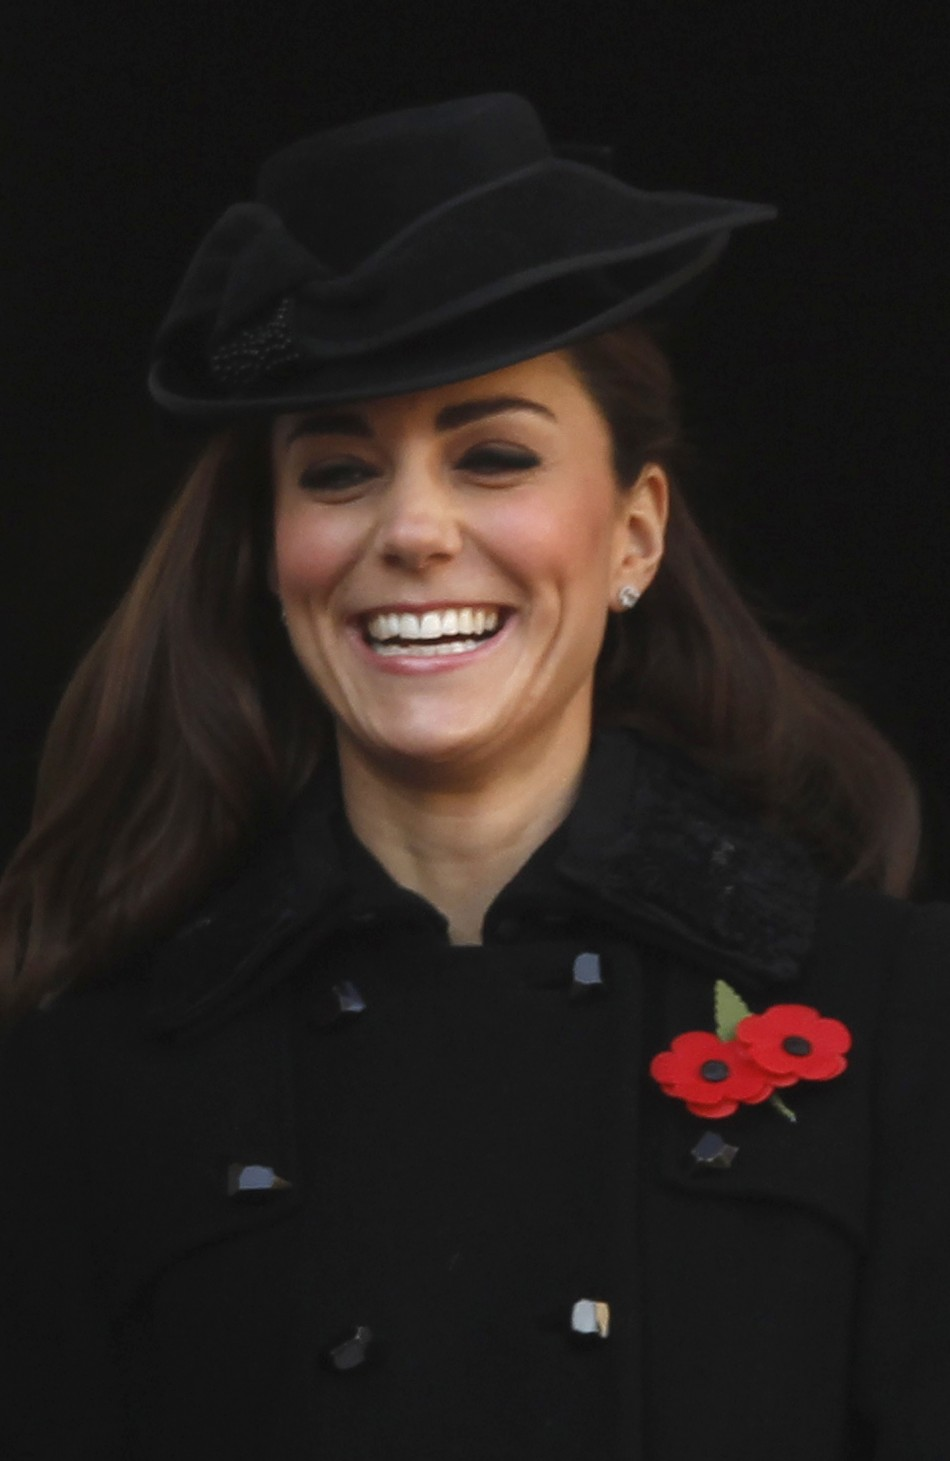 Catherine, Duchess of Cambridge attends the annual Remembrance Sunday ceremony at the Cenotaph in London